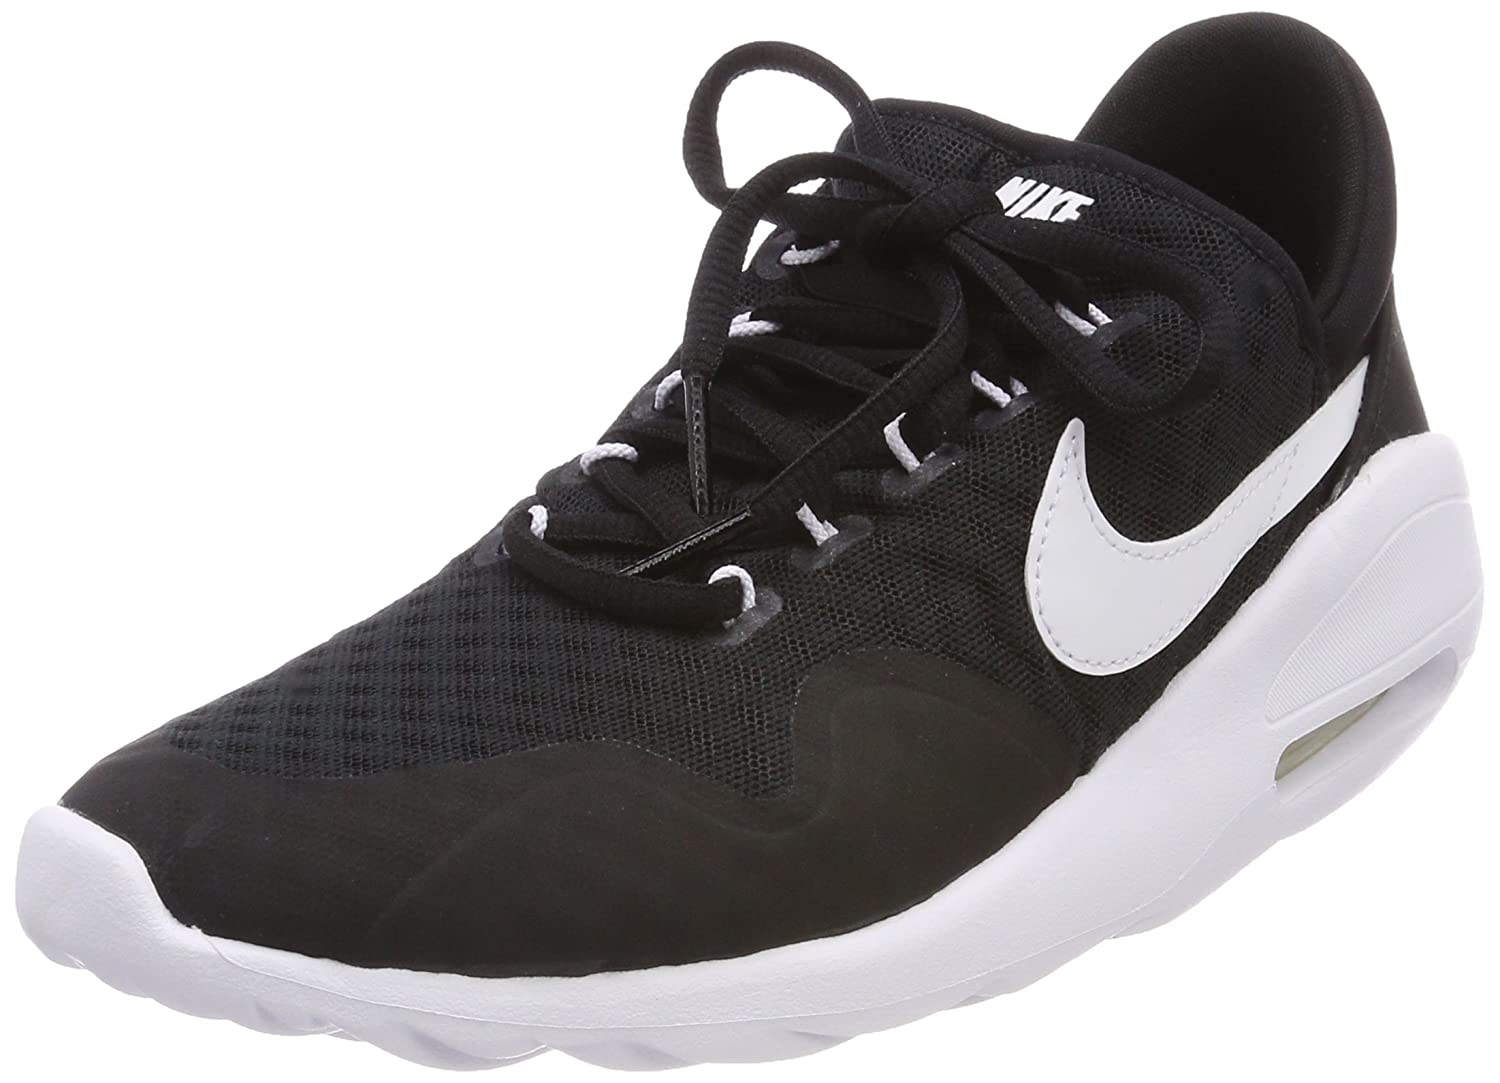 new concept babfb 3ea26 Nike Women s Air Max Sasha Low-Top Sneakers, Black (Black White-Black-Wh  003), 7.5 UK